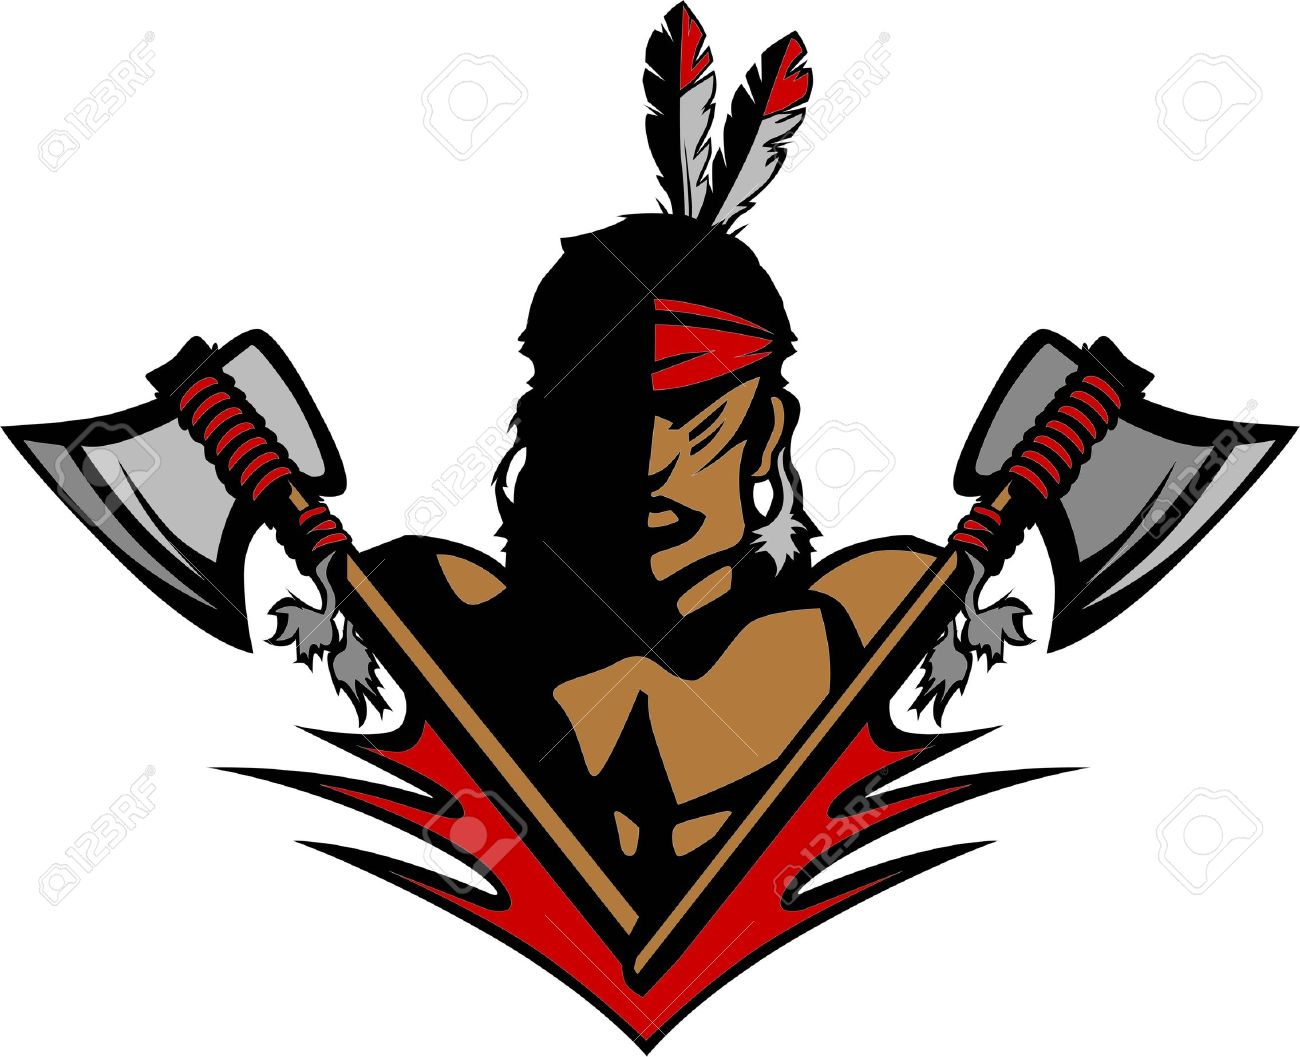 Graphic Native American Indian Brave Mascot with tomahawks and Feathers Stock Vector - 14567563